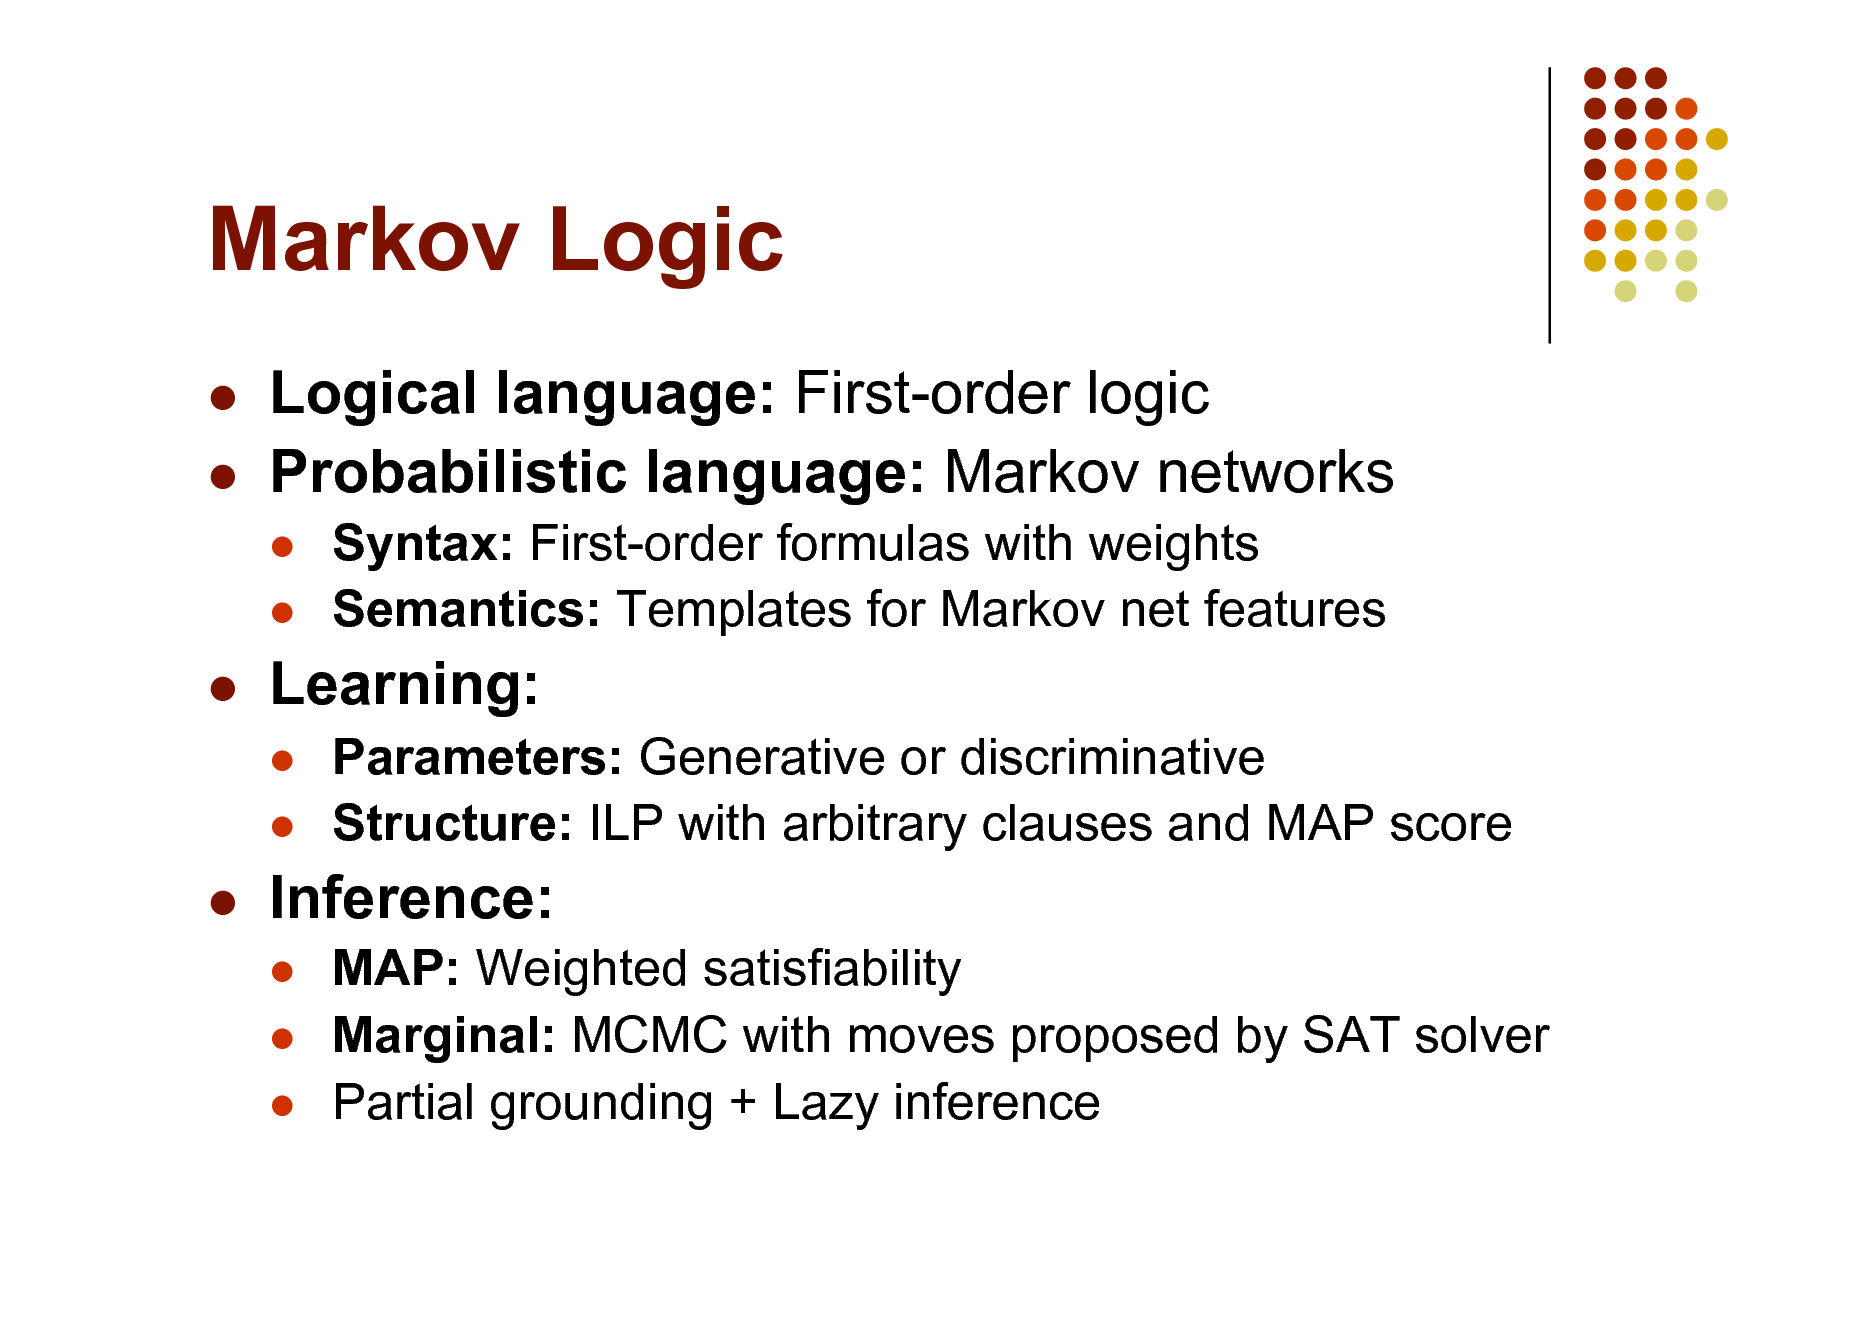 Slide: Markov Logic    Logical language: First-order logic Probabilistic language: Markov networks    Syntax: First-order formulas with weights Semantics: Templates for Markov net features Parameters: Generative or discriminative Structure: ILP with arbitrary clauses and MAP score MAP: Weighted satisfiability Marginal: MCMC with moves proposed by SAT solver Partial grounding + Lazy inference    Learning:      Inference: